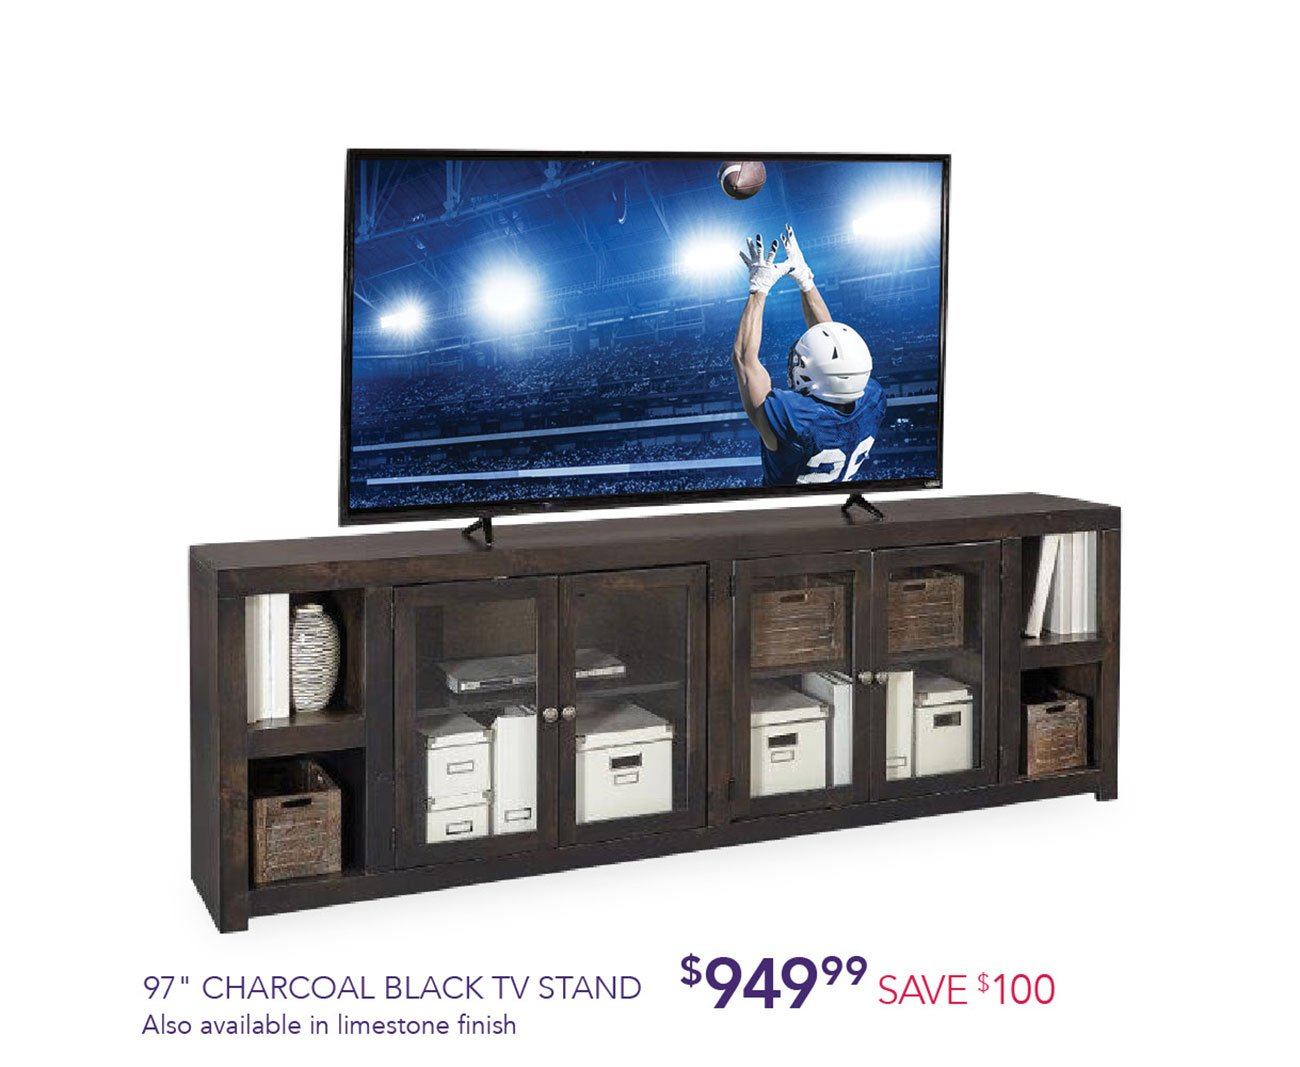 Charcoal-black-TV-Stand